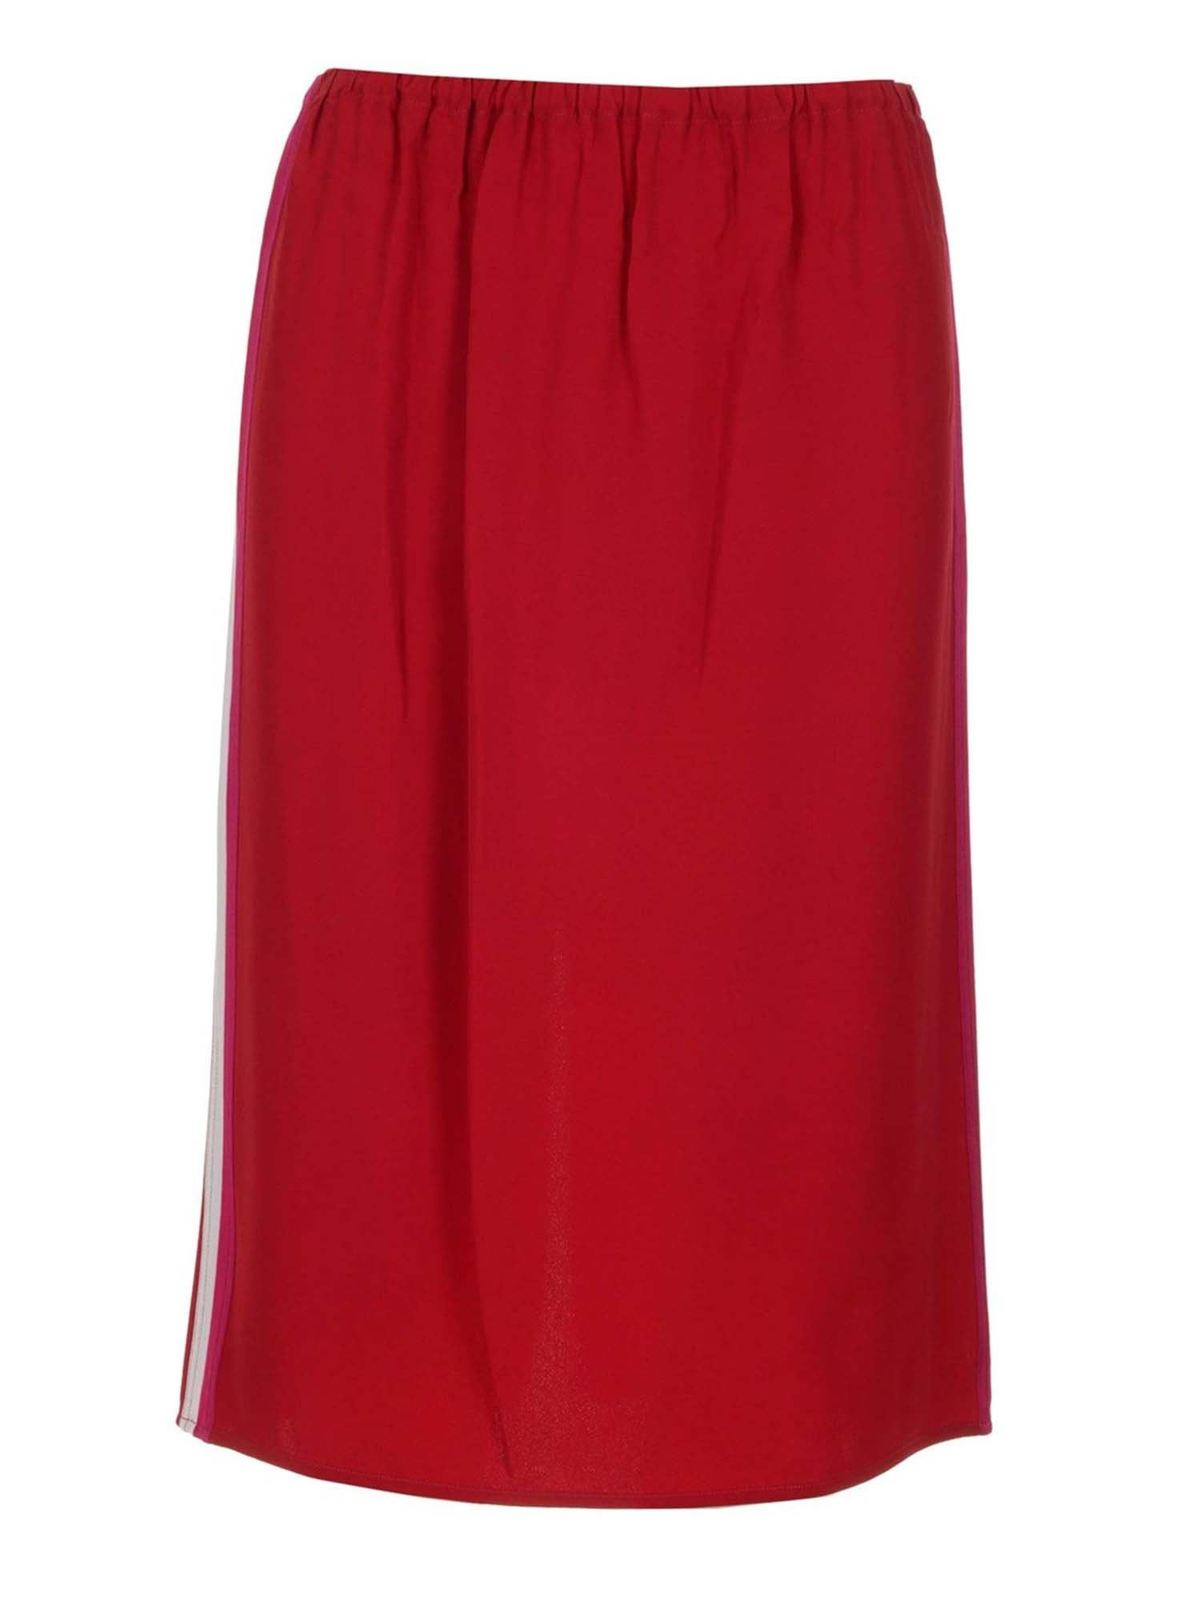 Marni SIDE BANDS SKIRT IN RED